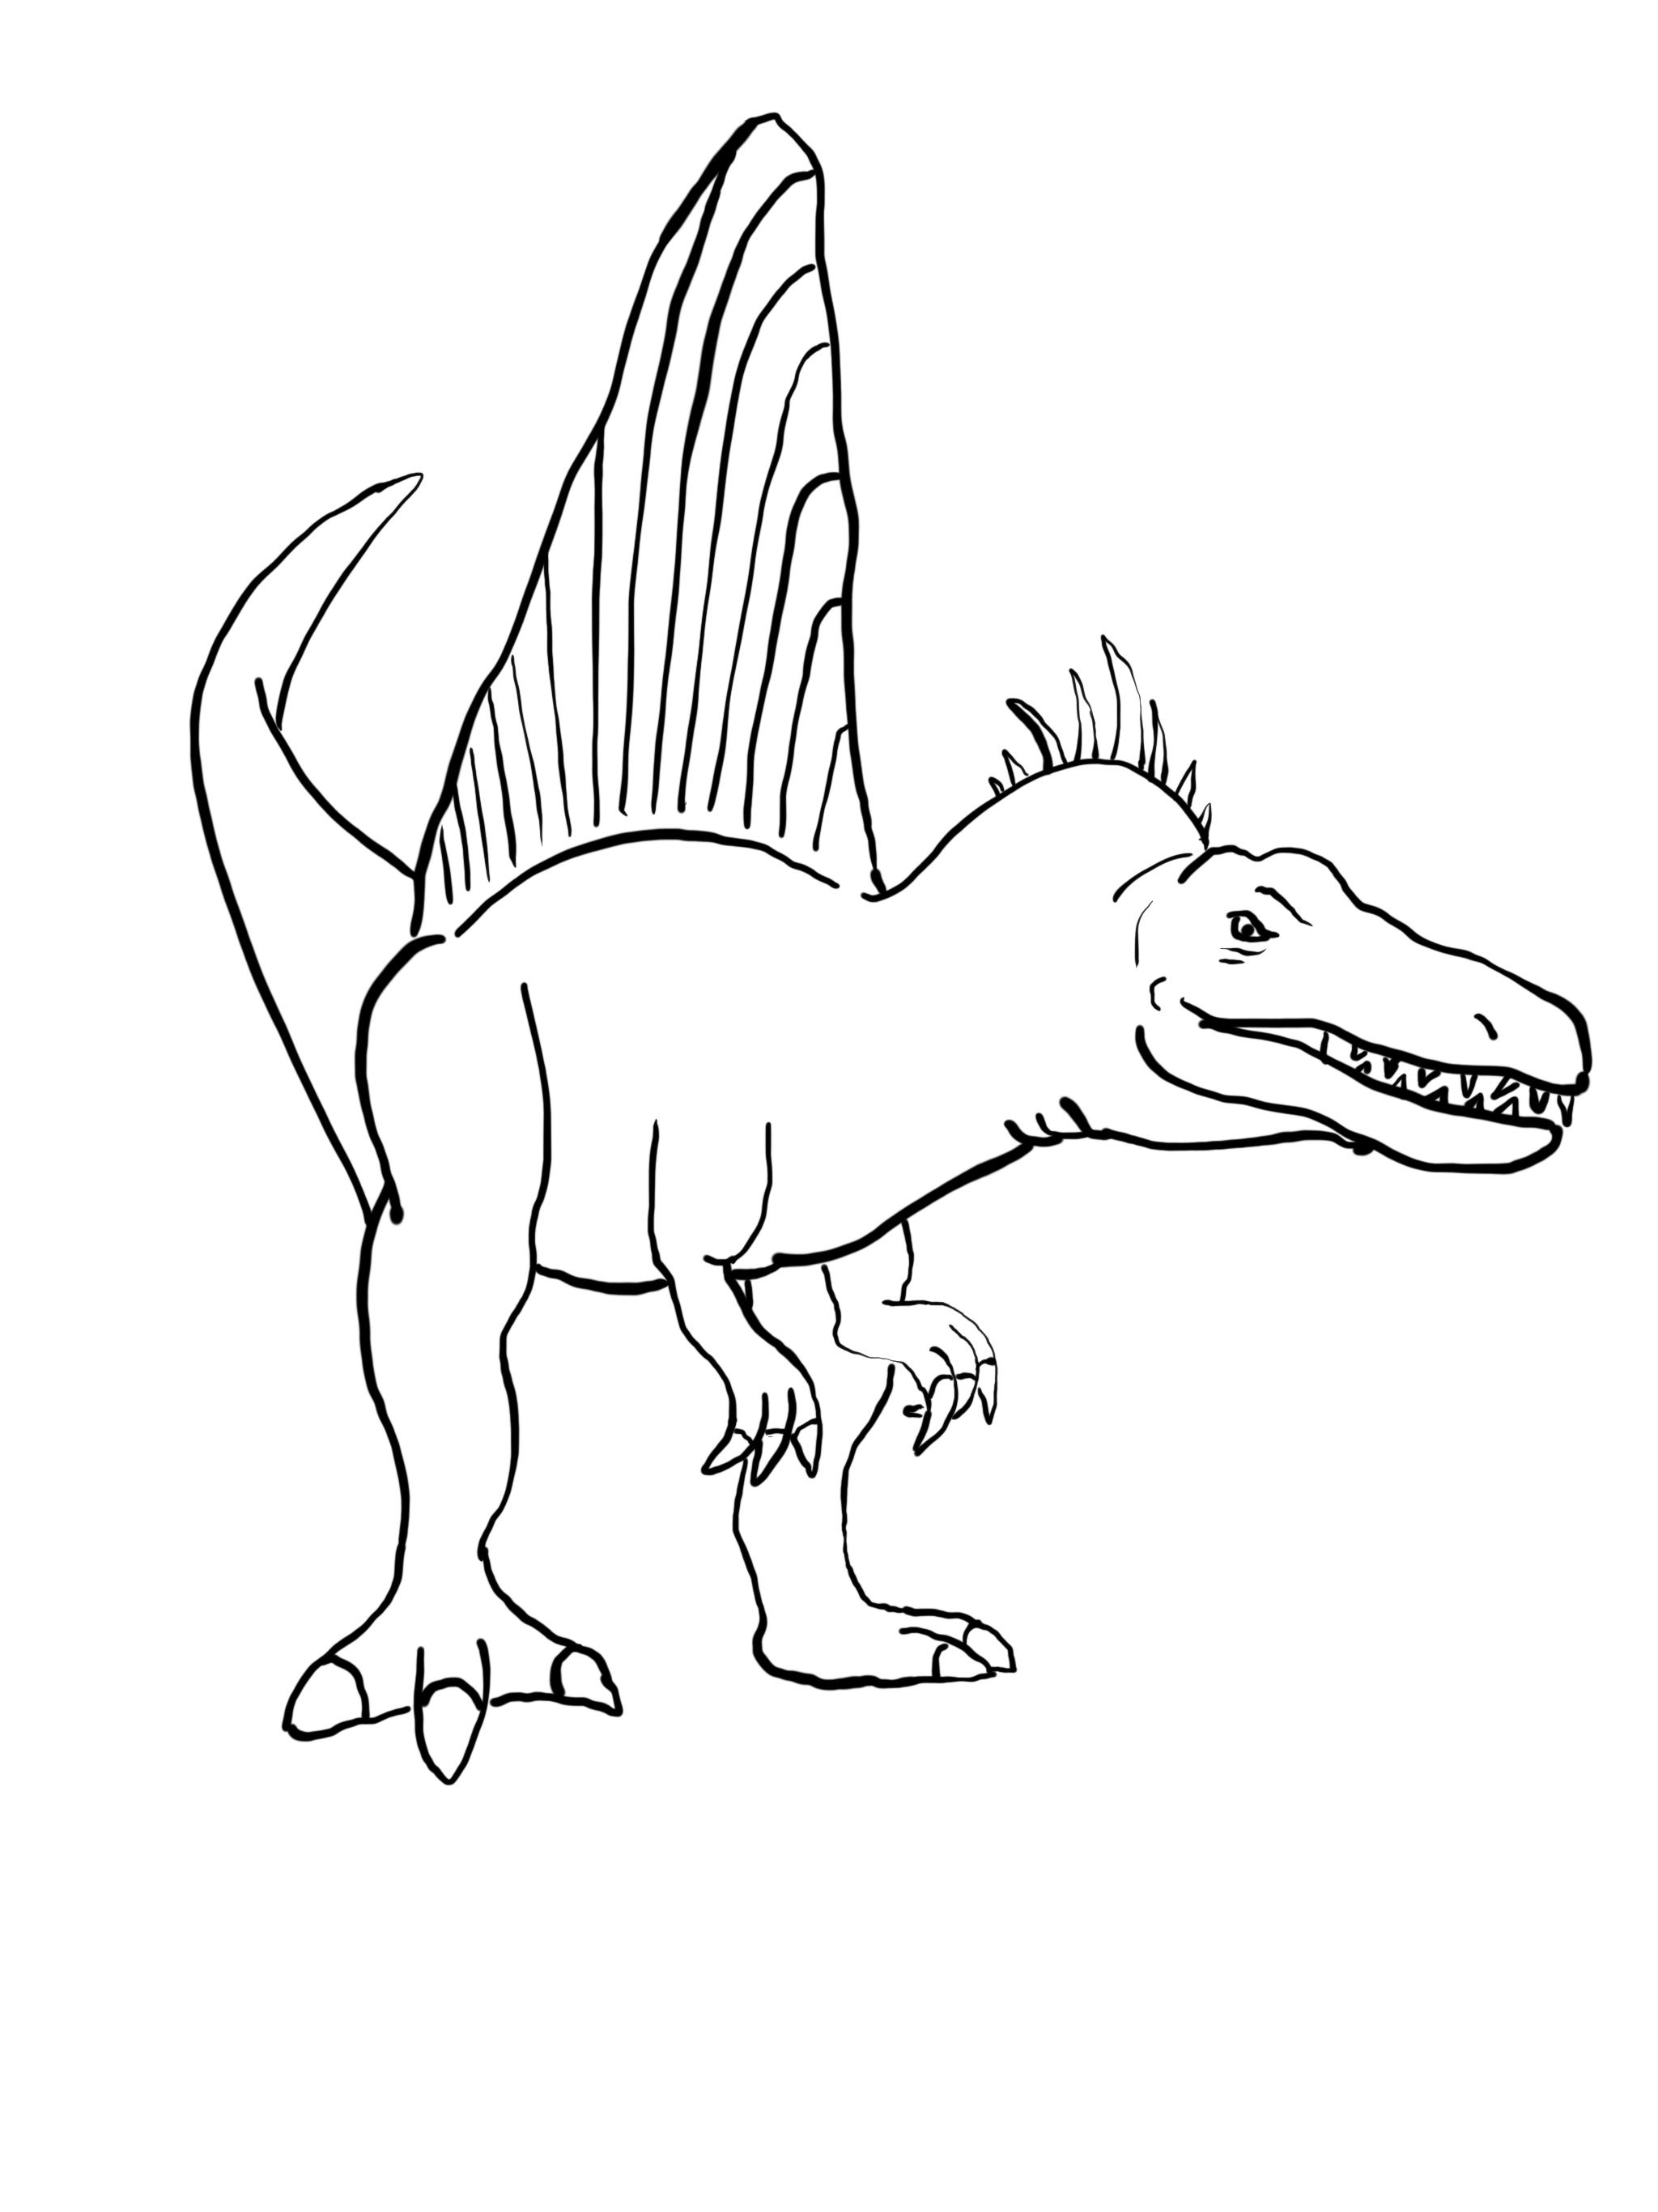 9 Spinosaurus Coloring Pages PDF - Dinosaur Coloring Books